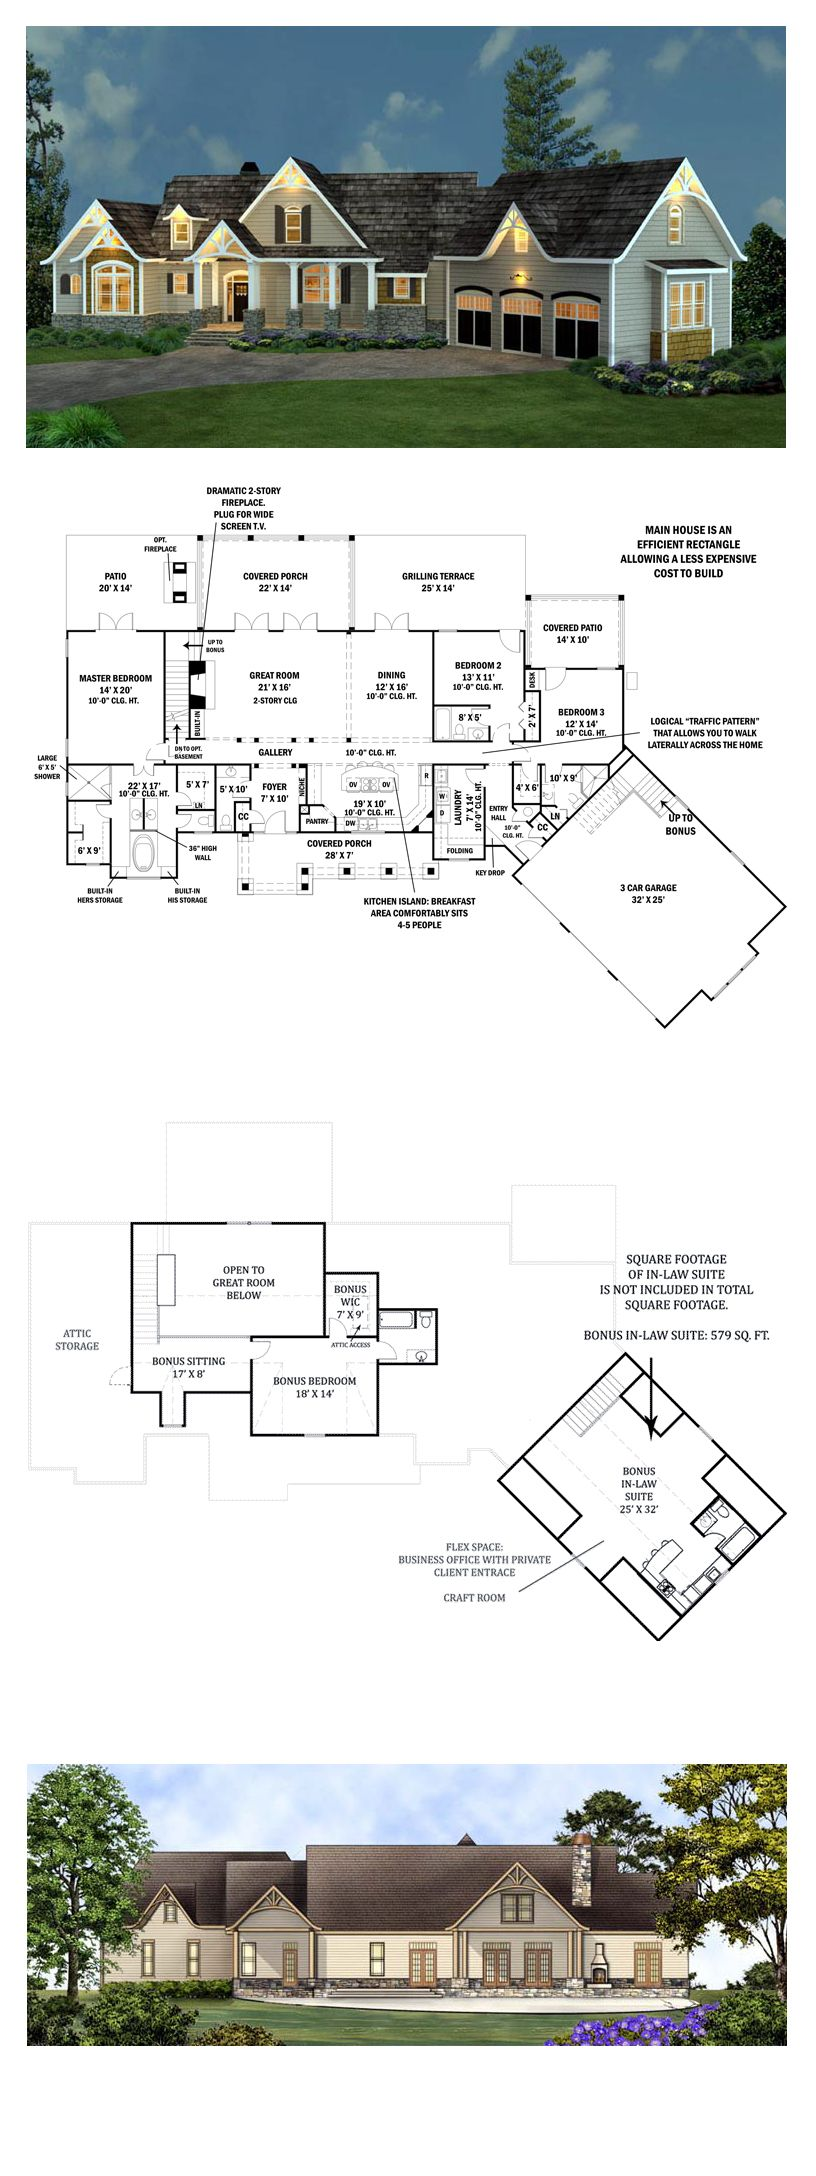 Ranch House Plan 98267 | Total Living Area: 2498 sq. ft., 3 bedrooms & 3.5 bathrooms. Stone, siding and cedar shakes blend beautifully together to create a unique look for this rustic ranch style home. The full front porch is ideal for peaceful evenings. #familyhomeplans